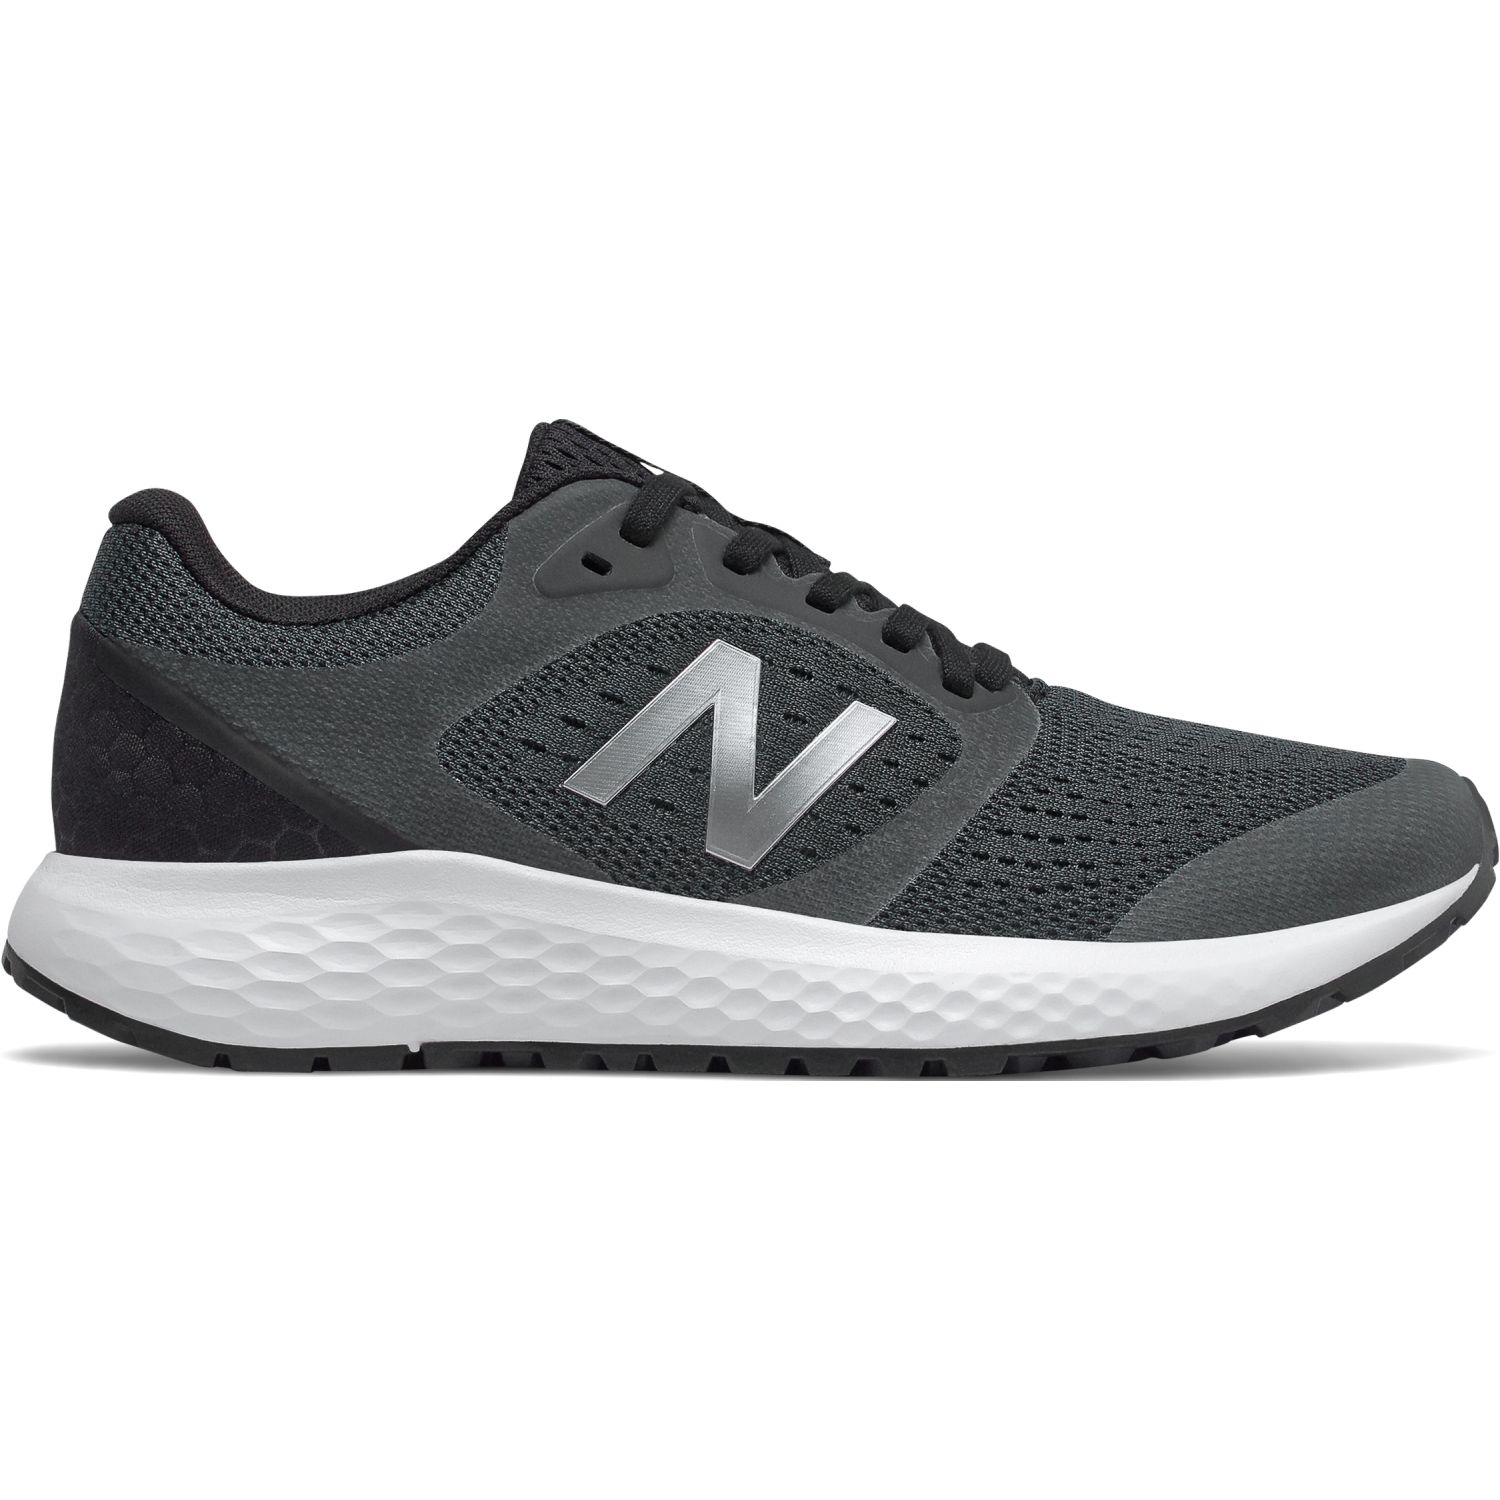 New Balance 520 Gris / plateado Trail Running